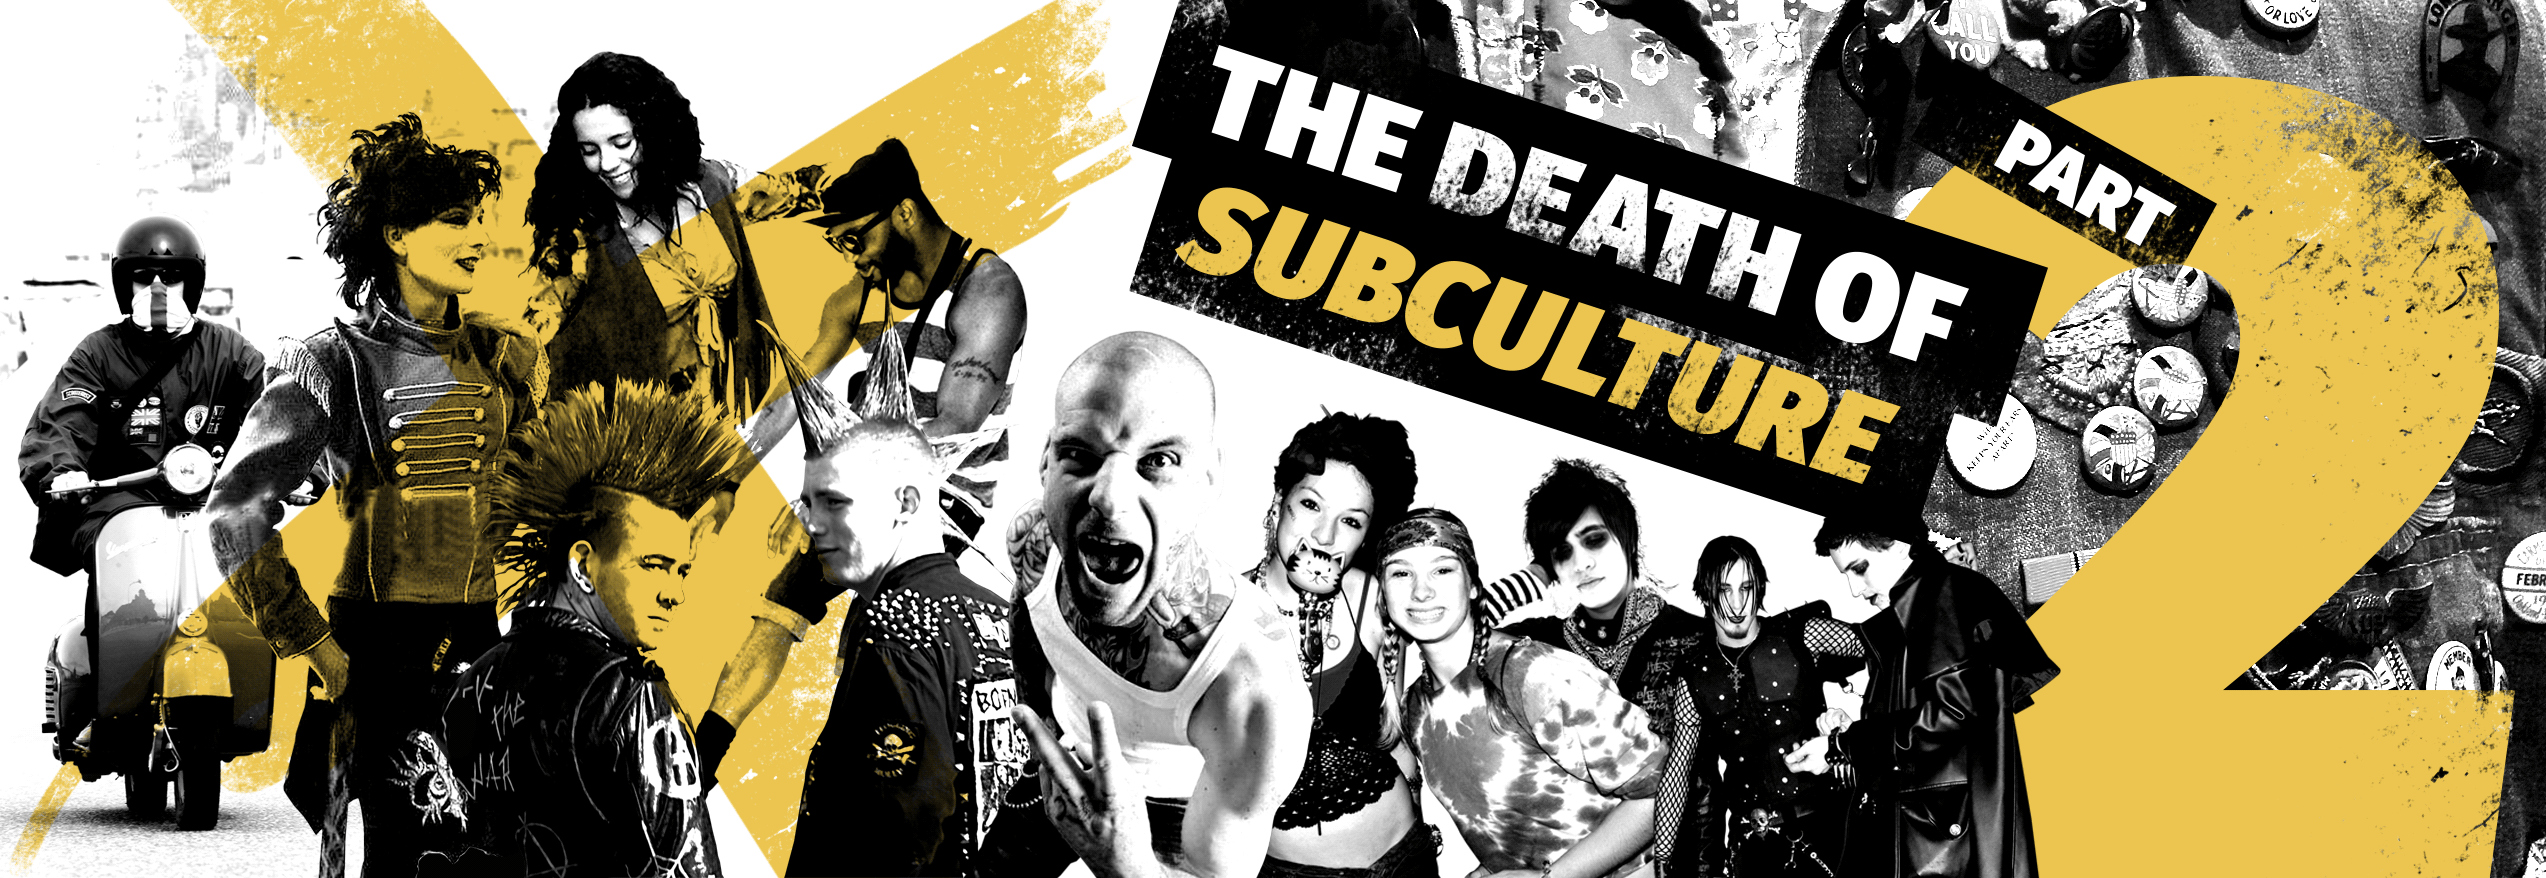 The Death of Subculture part 2: learning from the apes and the evolution of subculture